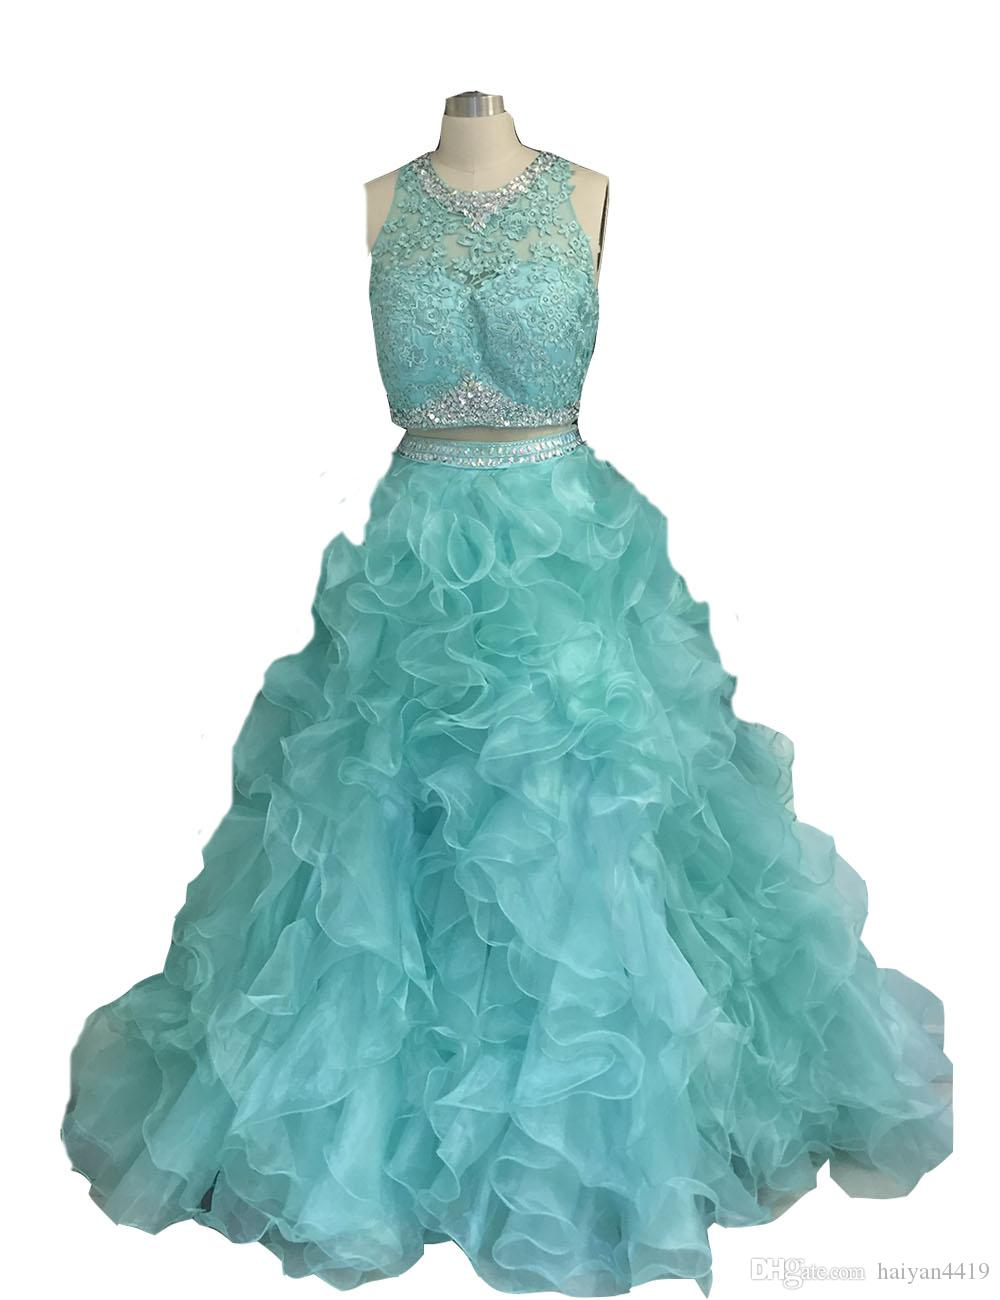 2017 New Mint Green Two Pieces Quinceanera Ball Gown Dresses Lace Appliqued Beaded Organza Long Ruffles Sweet 16 Party Prom Evening Gowns